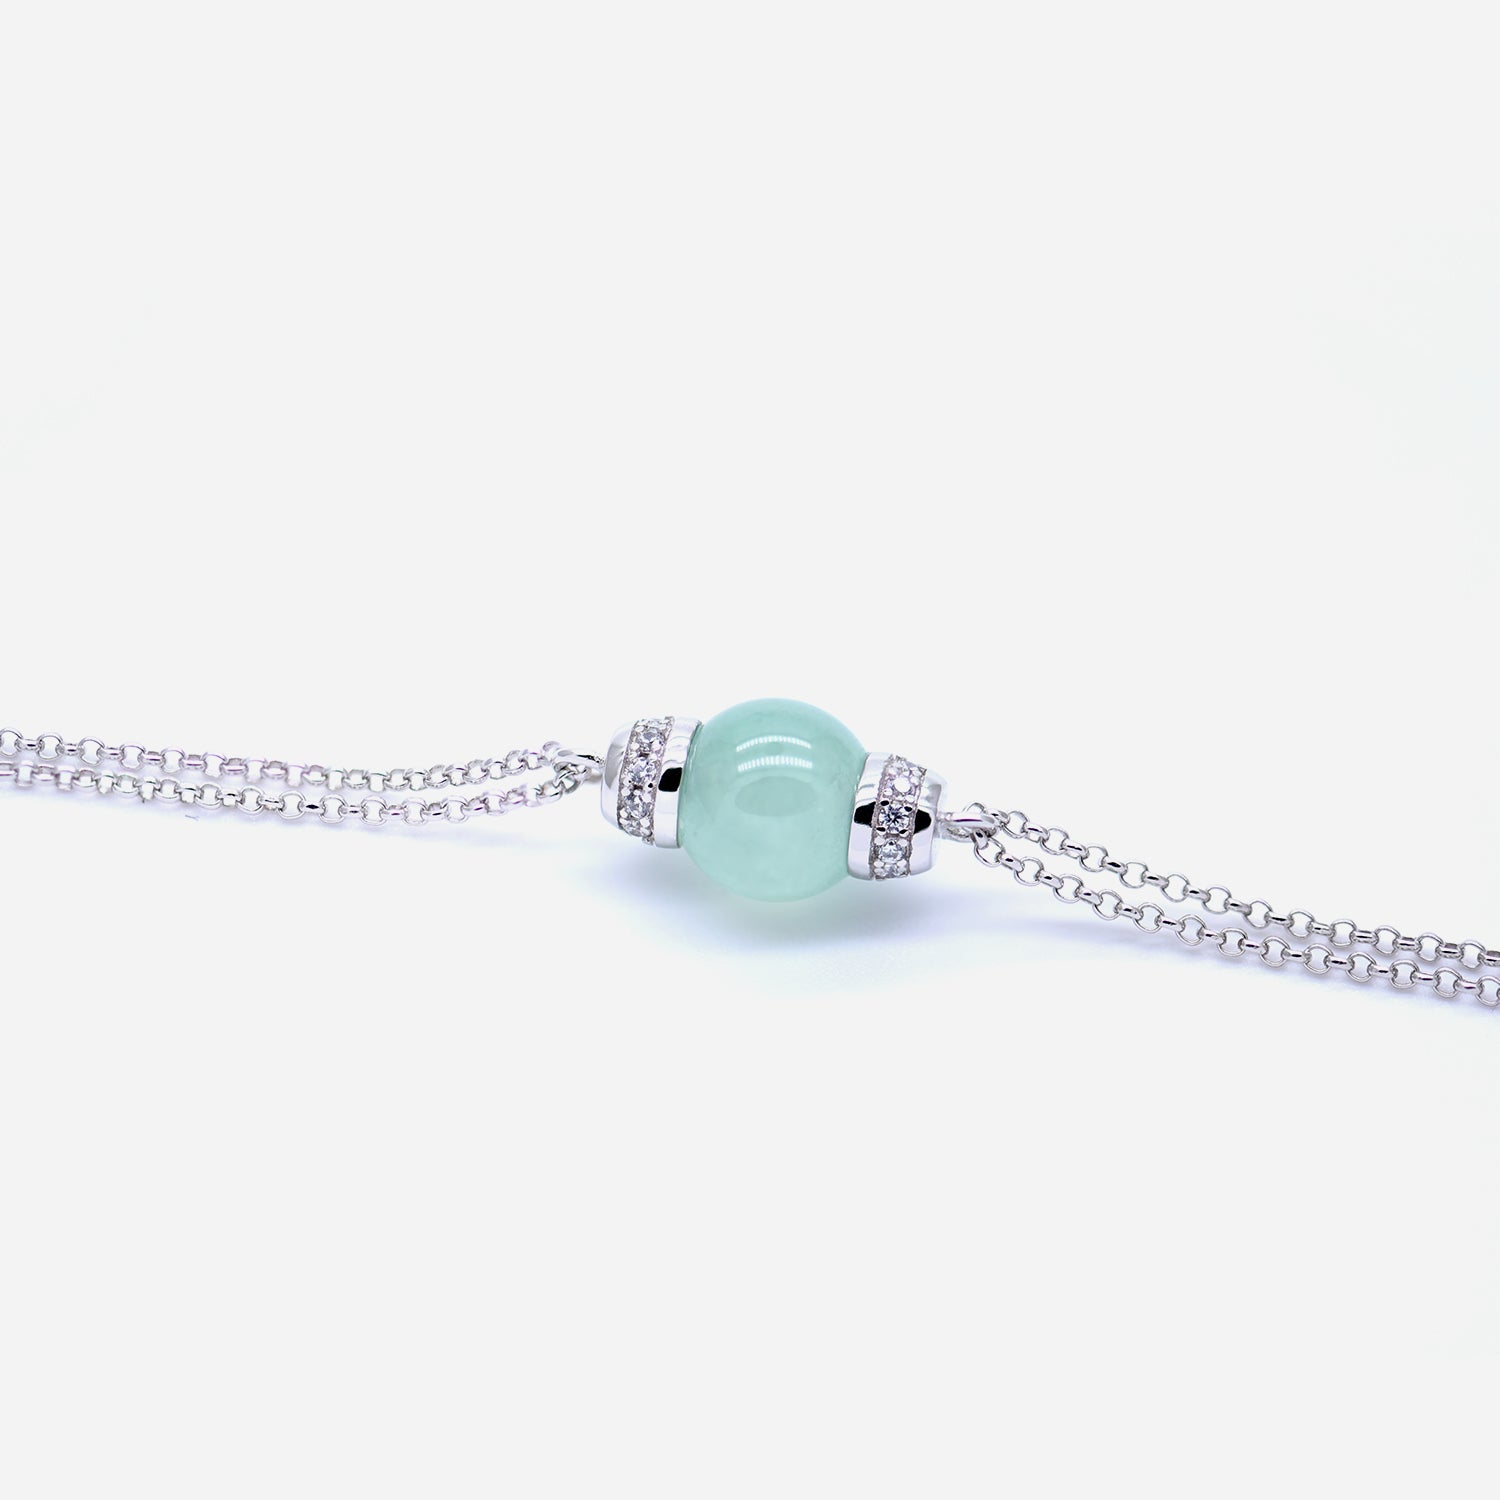 EDEN 悅 Bracelet in Light Green Icy Jade